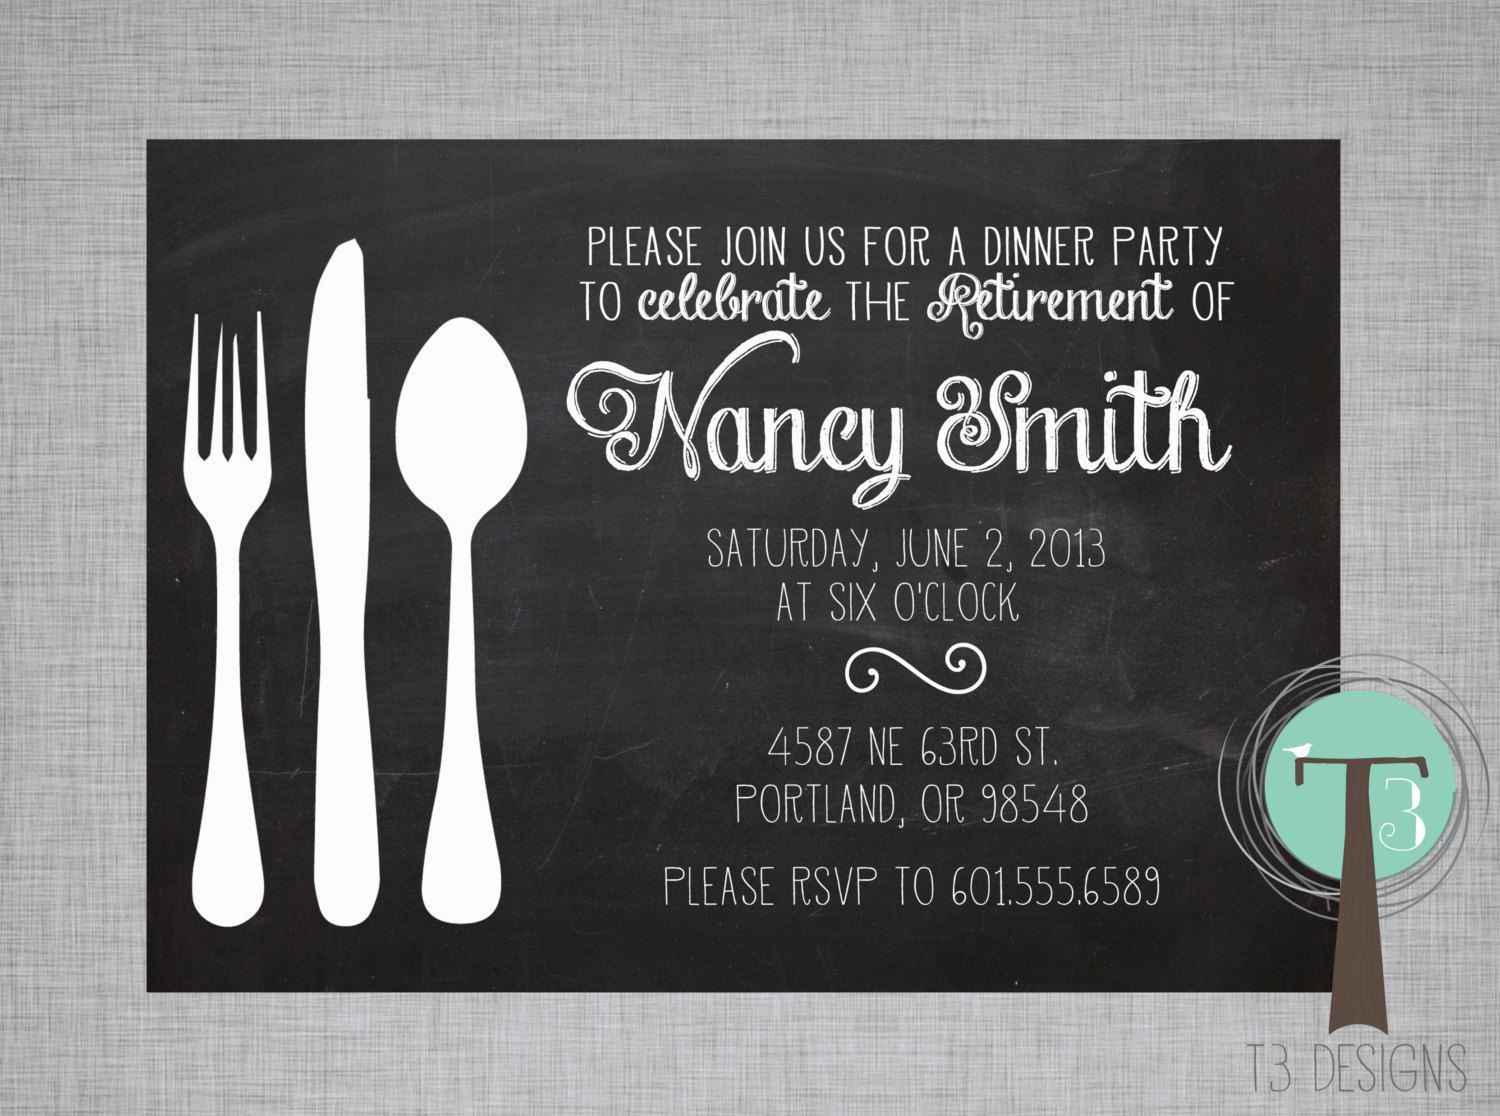 Dinner Invitation Template Dinner Invitation Template  Dinner Invitation Template Text .